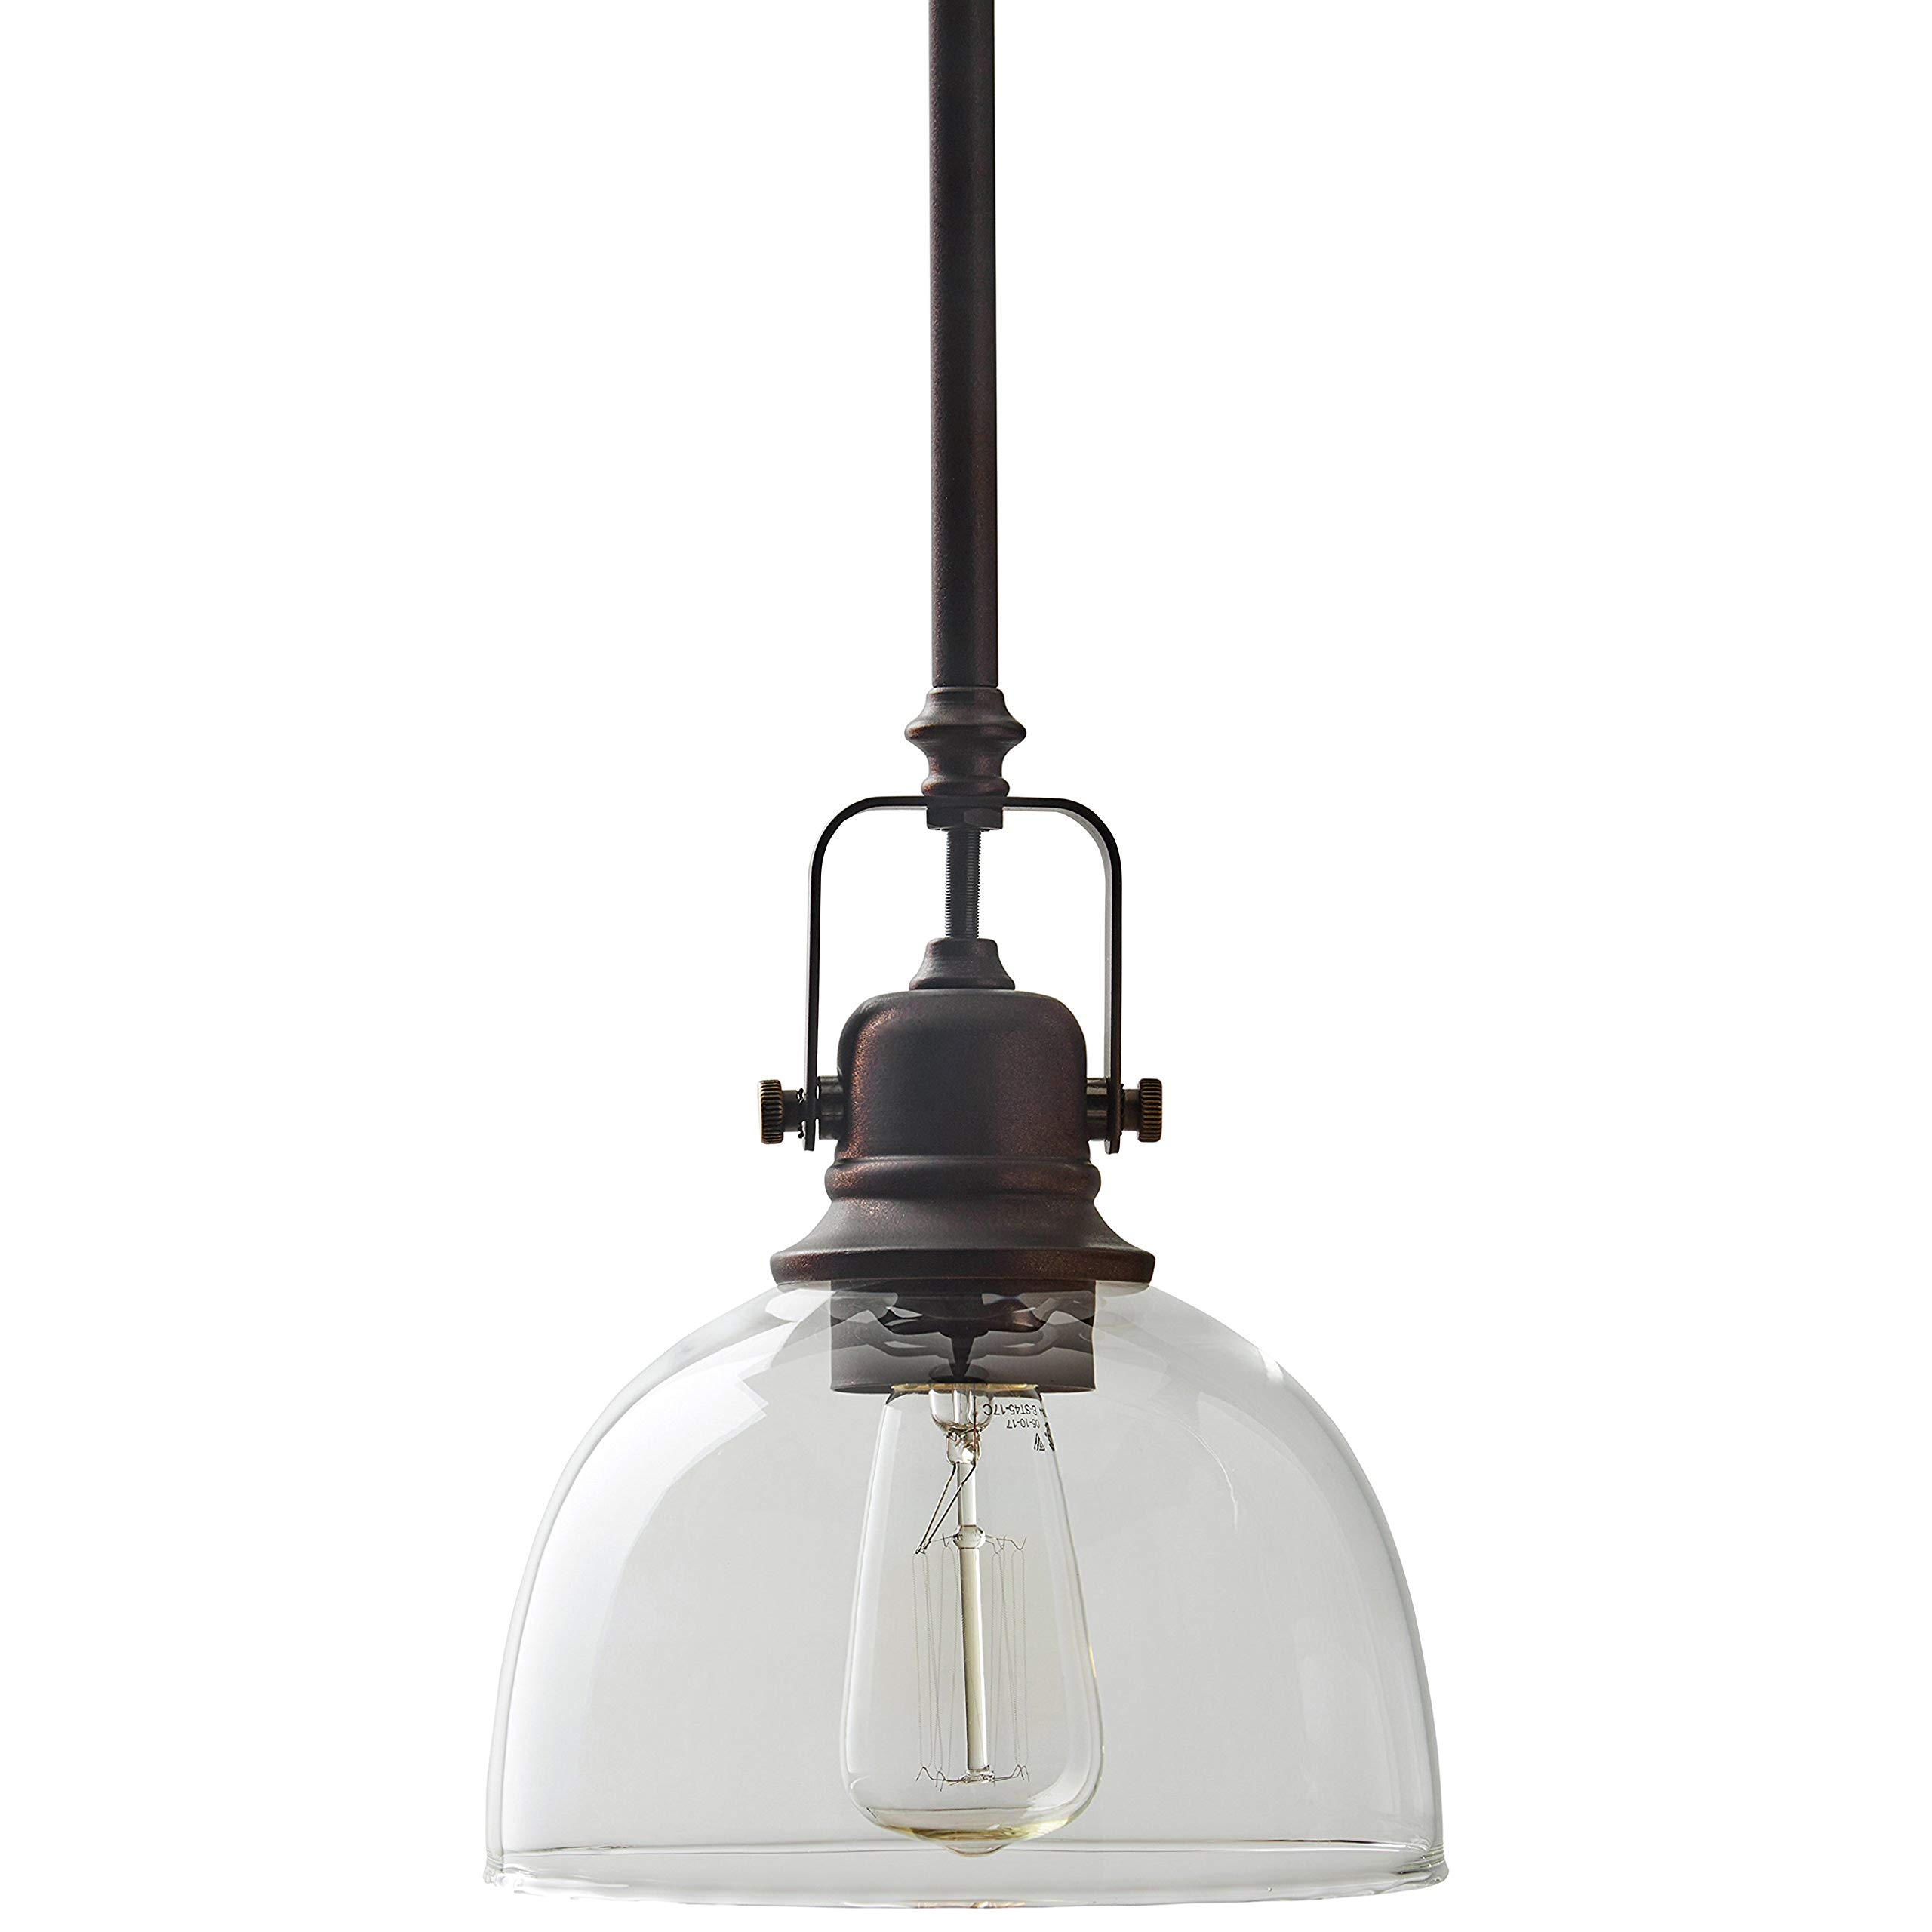 Amazon Brand – Stone & Beam Vintage Ceiling Pendant Lighting Fixture With Light Bulb And Clear Glass Shade - 7 x 7 x 17.25 Inches, 11.75 - 59.25 Inch Cord, Oil Rubbed Bronze